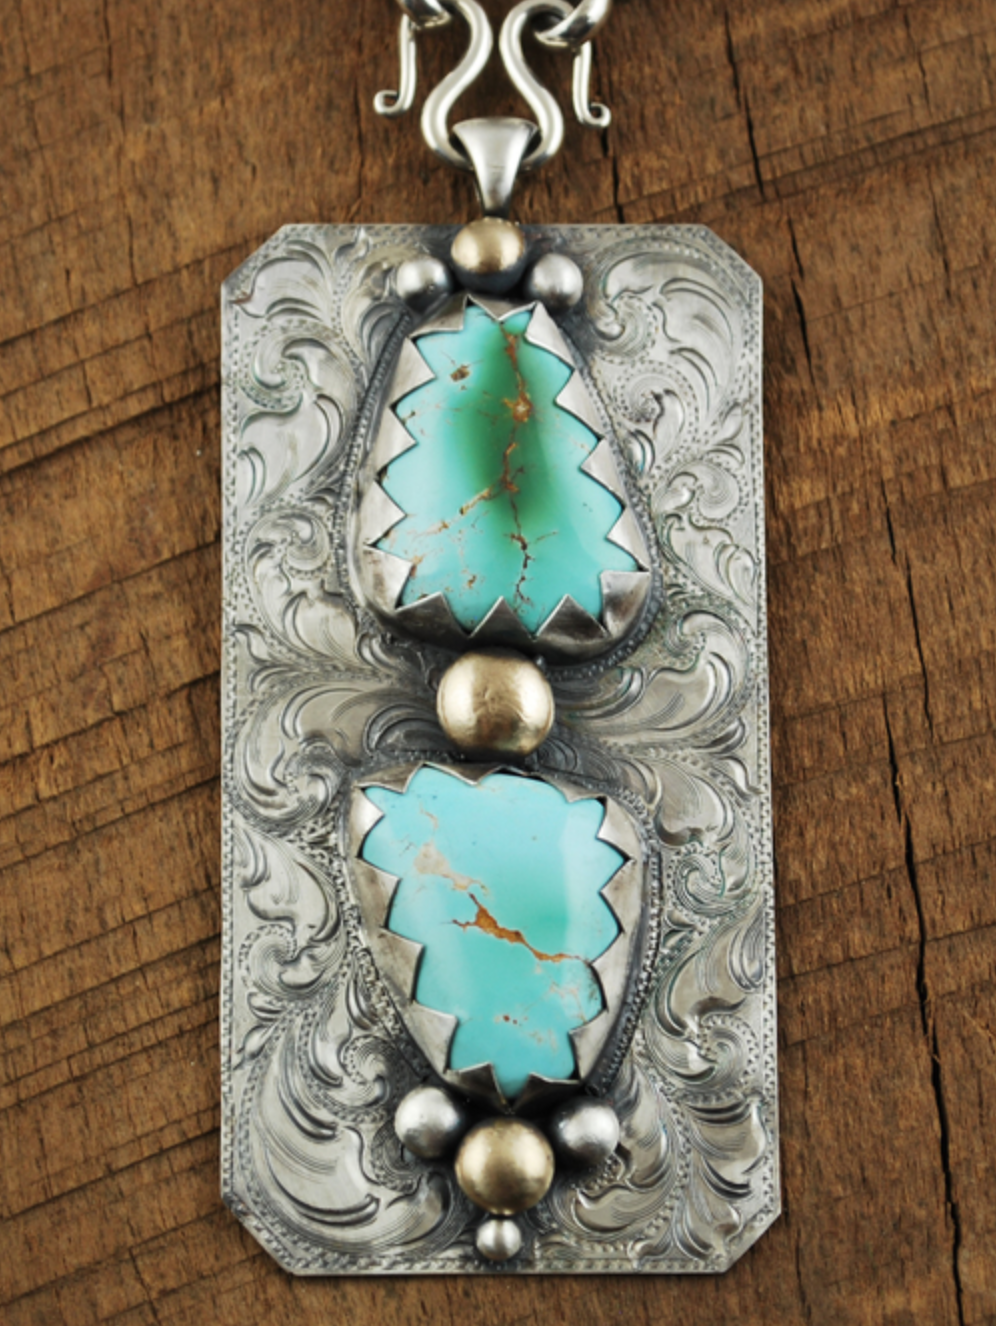 Ivy McNulty - http://www.imsilver.comHand engraved jewelry crafted of silver, copper & bronze create original designs. Adornments of turquoise, elk ivory & horsehair complete these necklaces, pendants, earrings, bracelets & more.